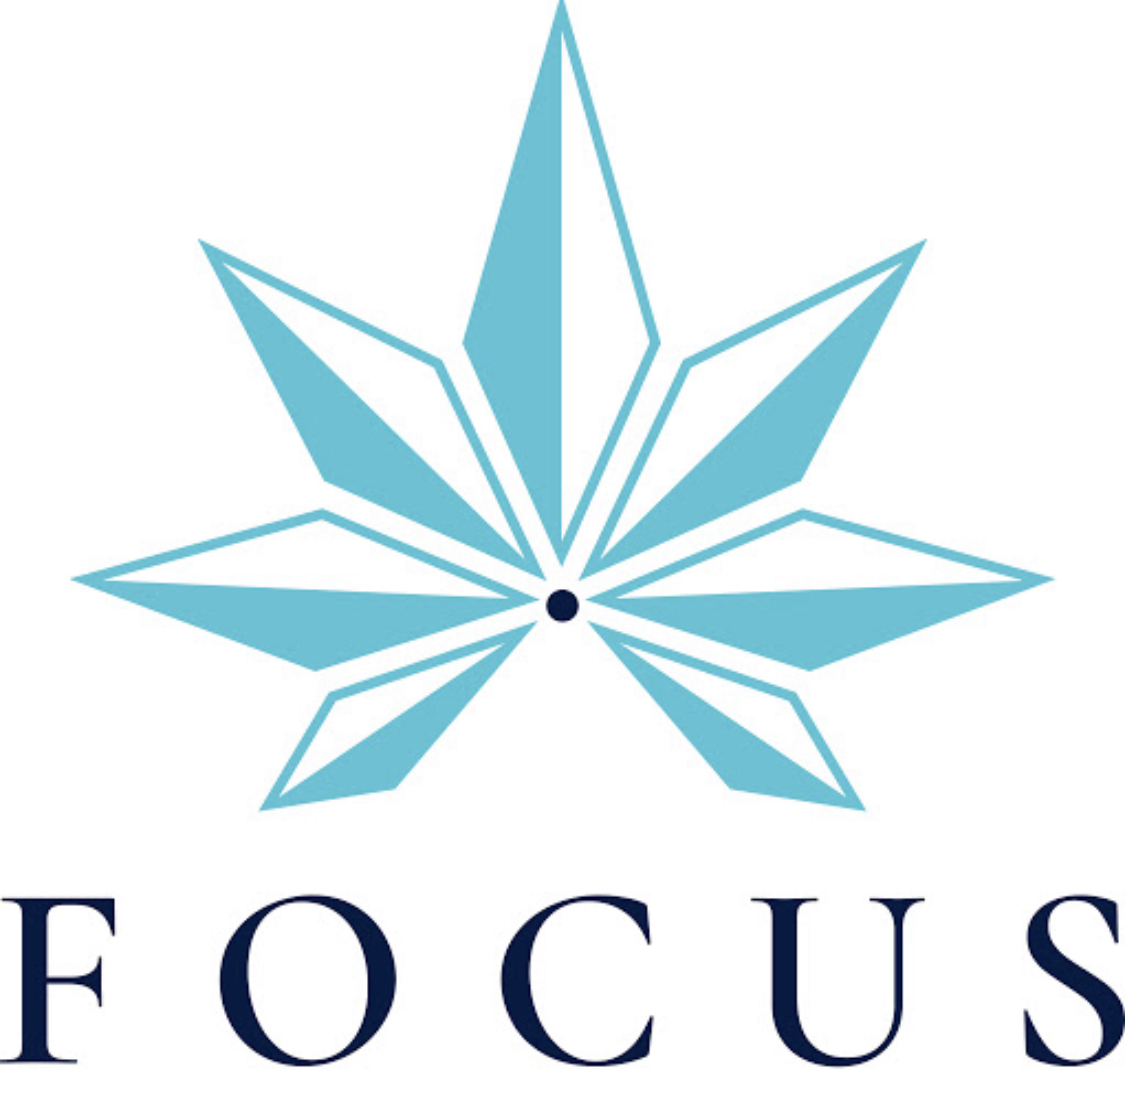 Take control of your life and return balance to your body's natural functions! Focus Hemp Co's CBD-rich Hemp Oil Products contain all the vital cannabinoids, plant compounds, terpenes and minerals needed to elevate your body function! At Focus Hemp Co. we are American made, lab tested and quality driven. We pride ourselves on integrity and providing our consumers with honest products targeted to enhance their daily lives. Through handpicked organic sourcing and industry-leading extraction processes; we are able to deliver all of the naturally occurring benefits of the hemp plant, in our CBD-rich full spectrum products.